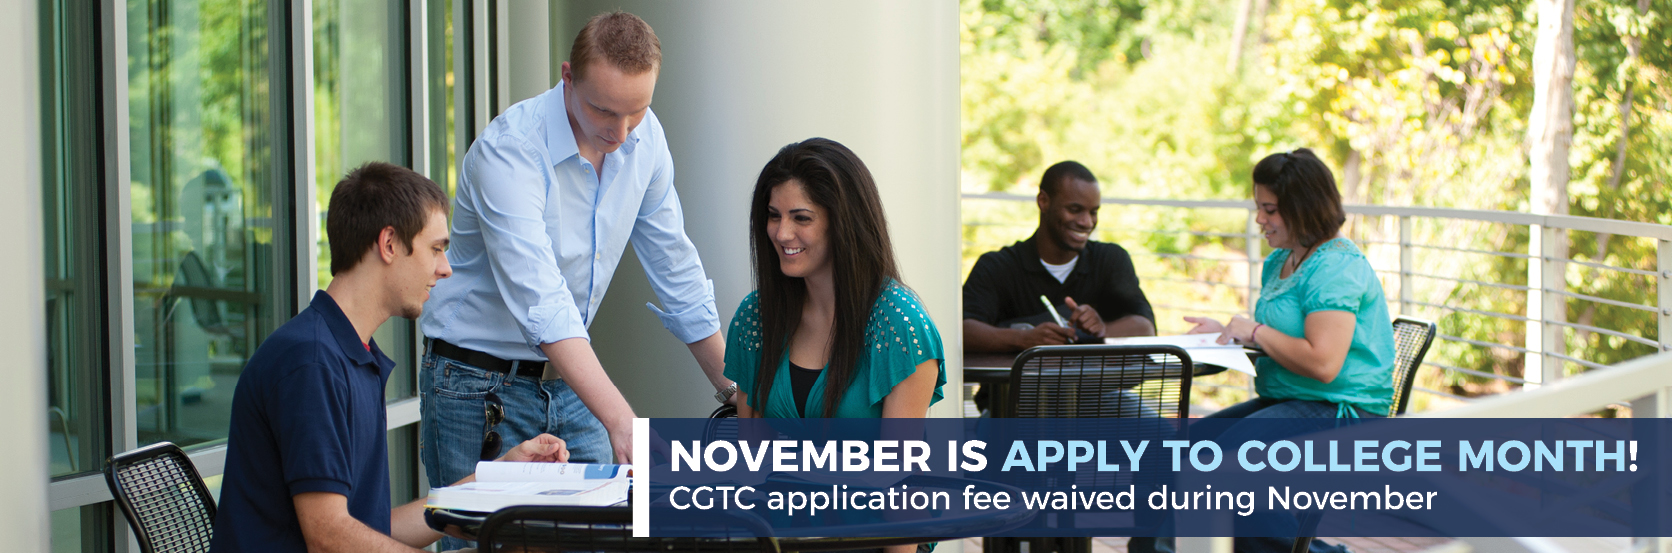 November is Apply to College Month! CGTC application fee waived during November.